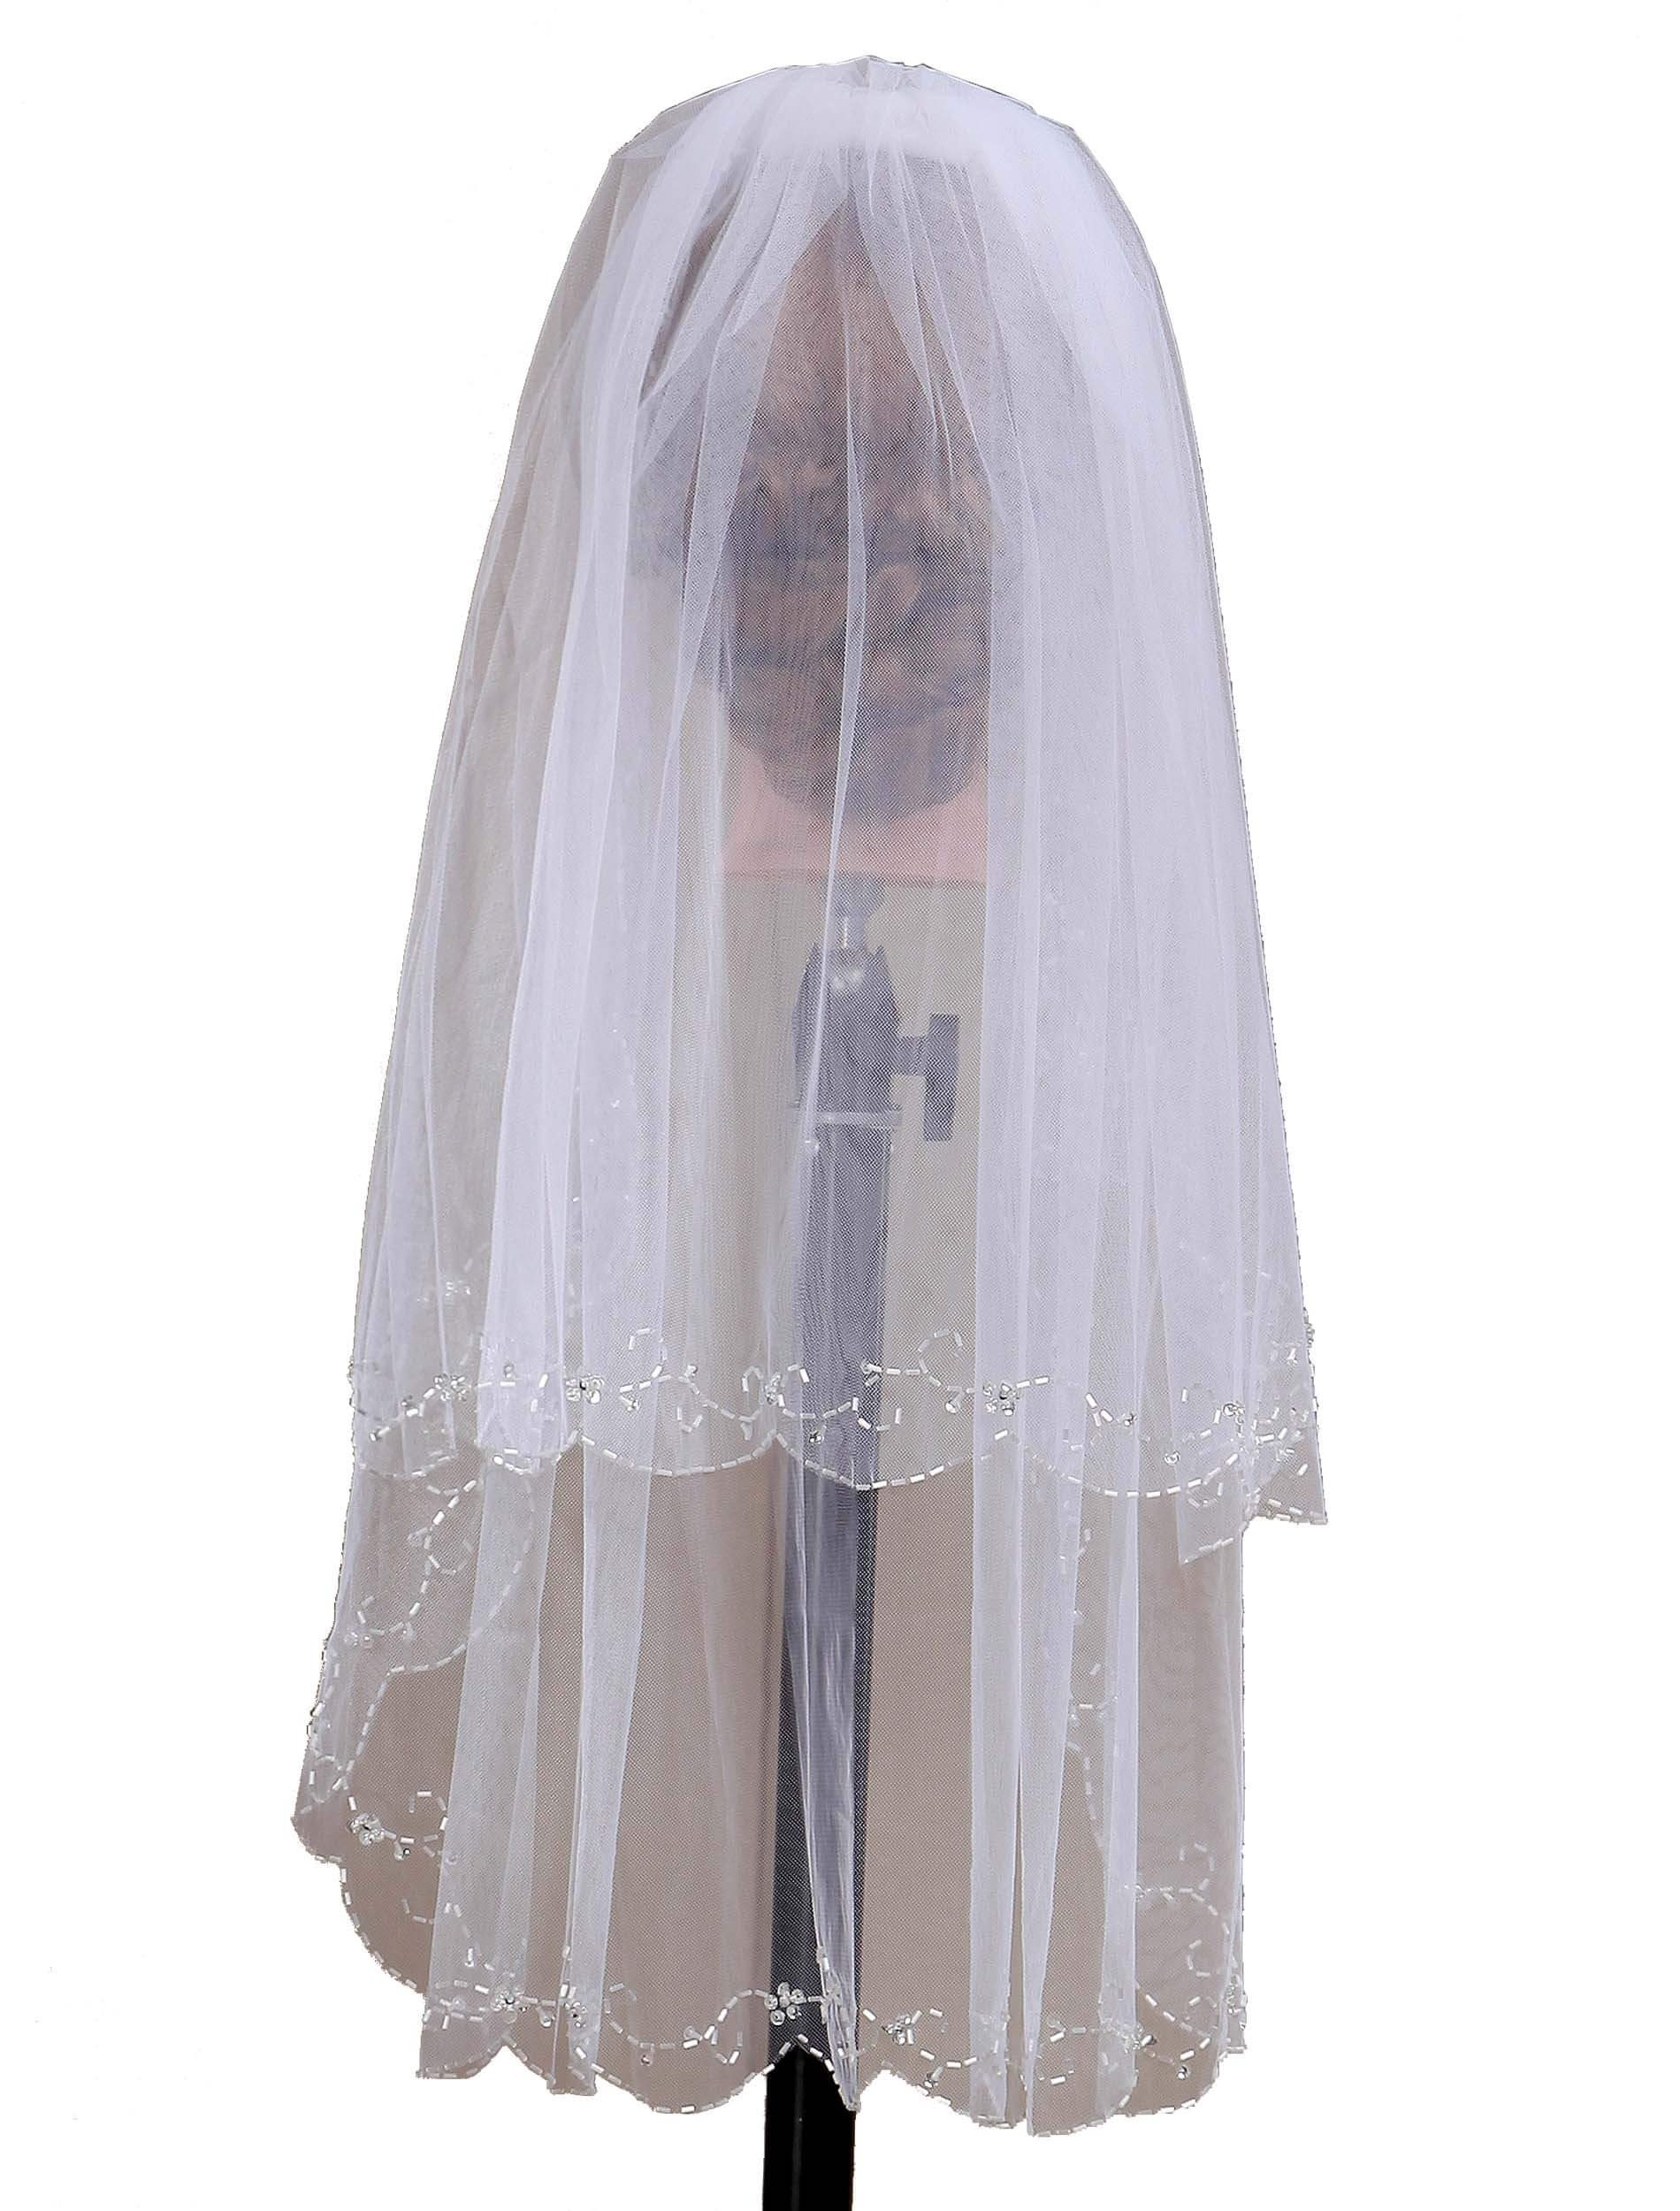 Dressblee 2T Short Sequin Pearl Edge Crystals Beaded Bling Wedding Bridal Veil-ivory6